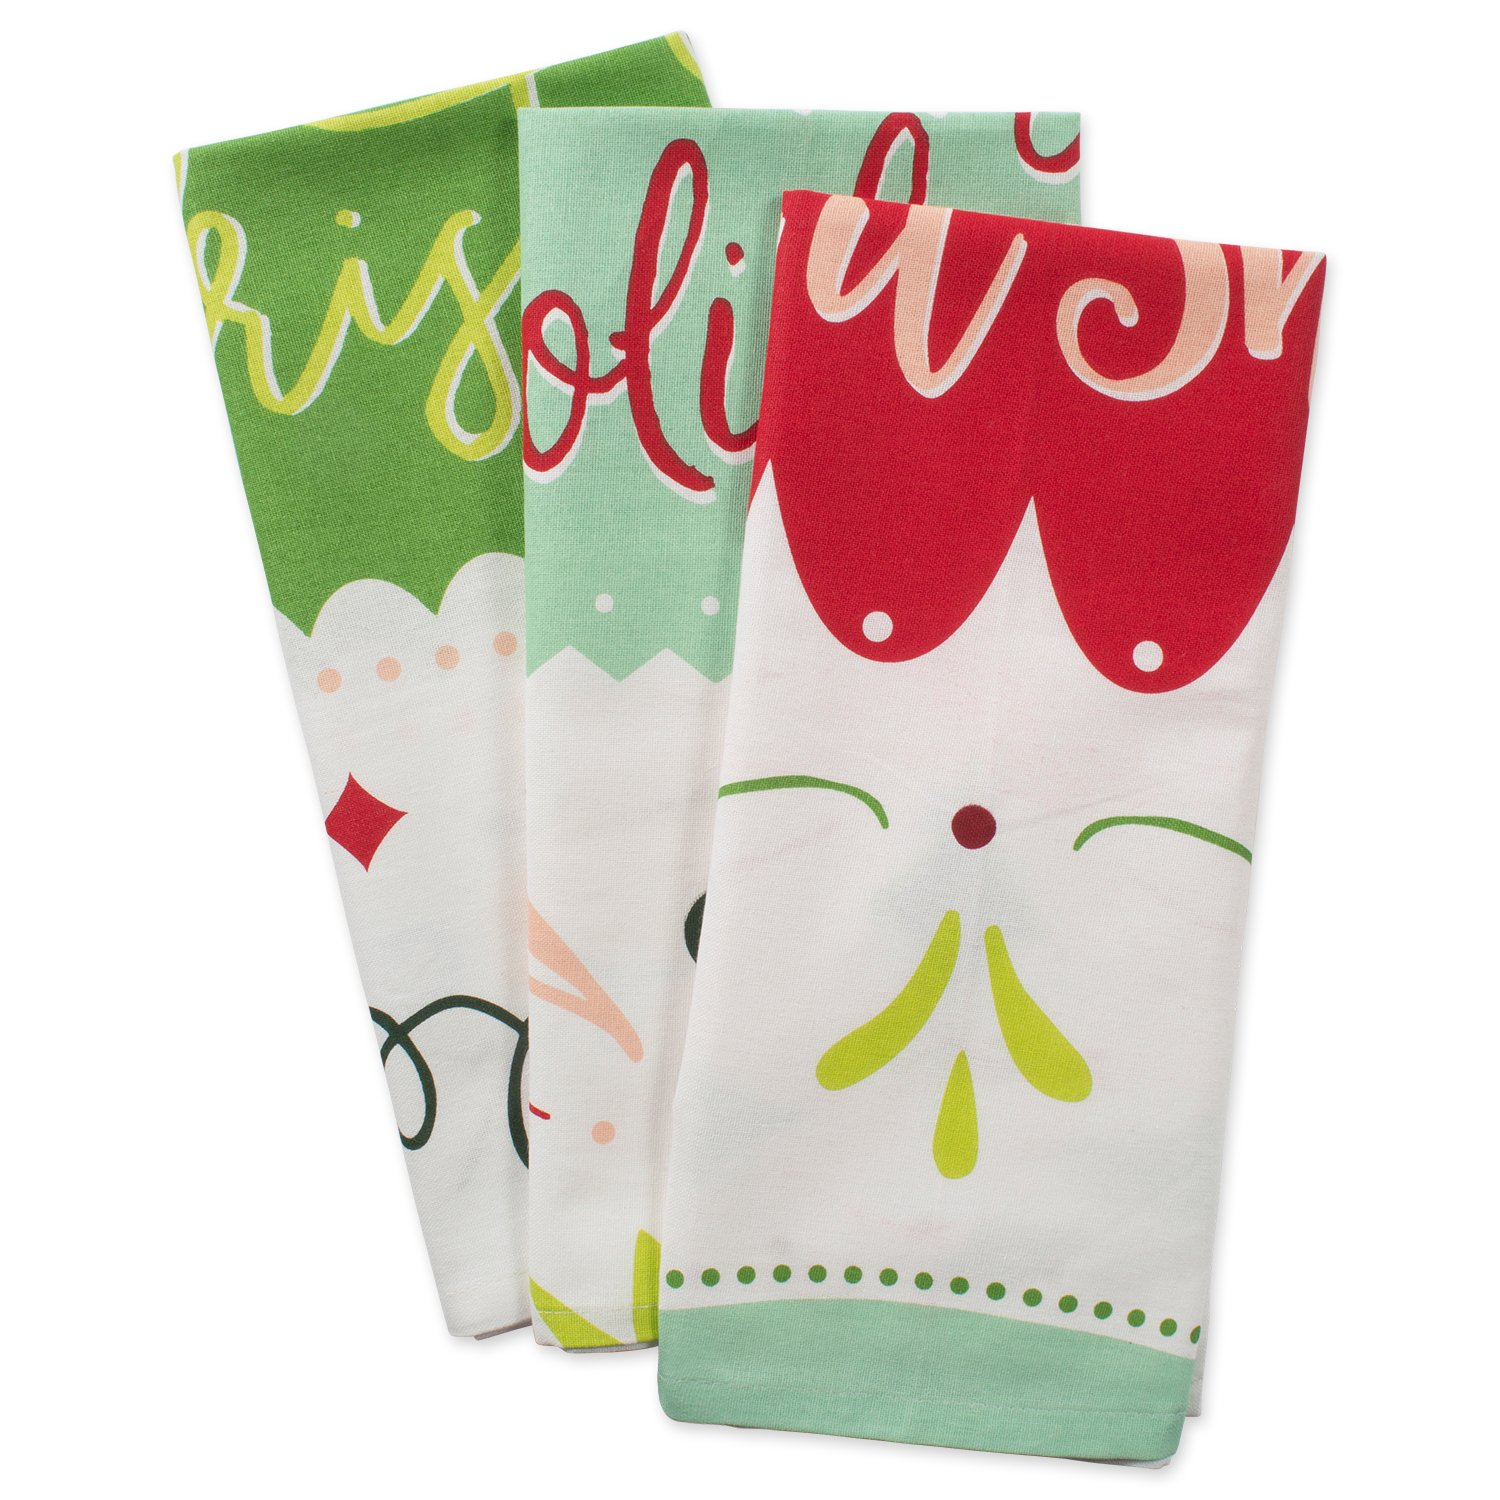 """DII Cotton Christmas Holiday Printed Dish Towels, 18x28"""" Set of 2, Decorative Oversized Kitchen Towels, Perfect Home and Kitchen Gift-O Xmas 18x28"""" Set of 2 CAMZ10843"""